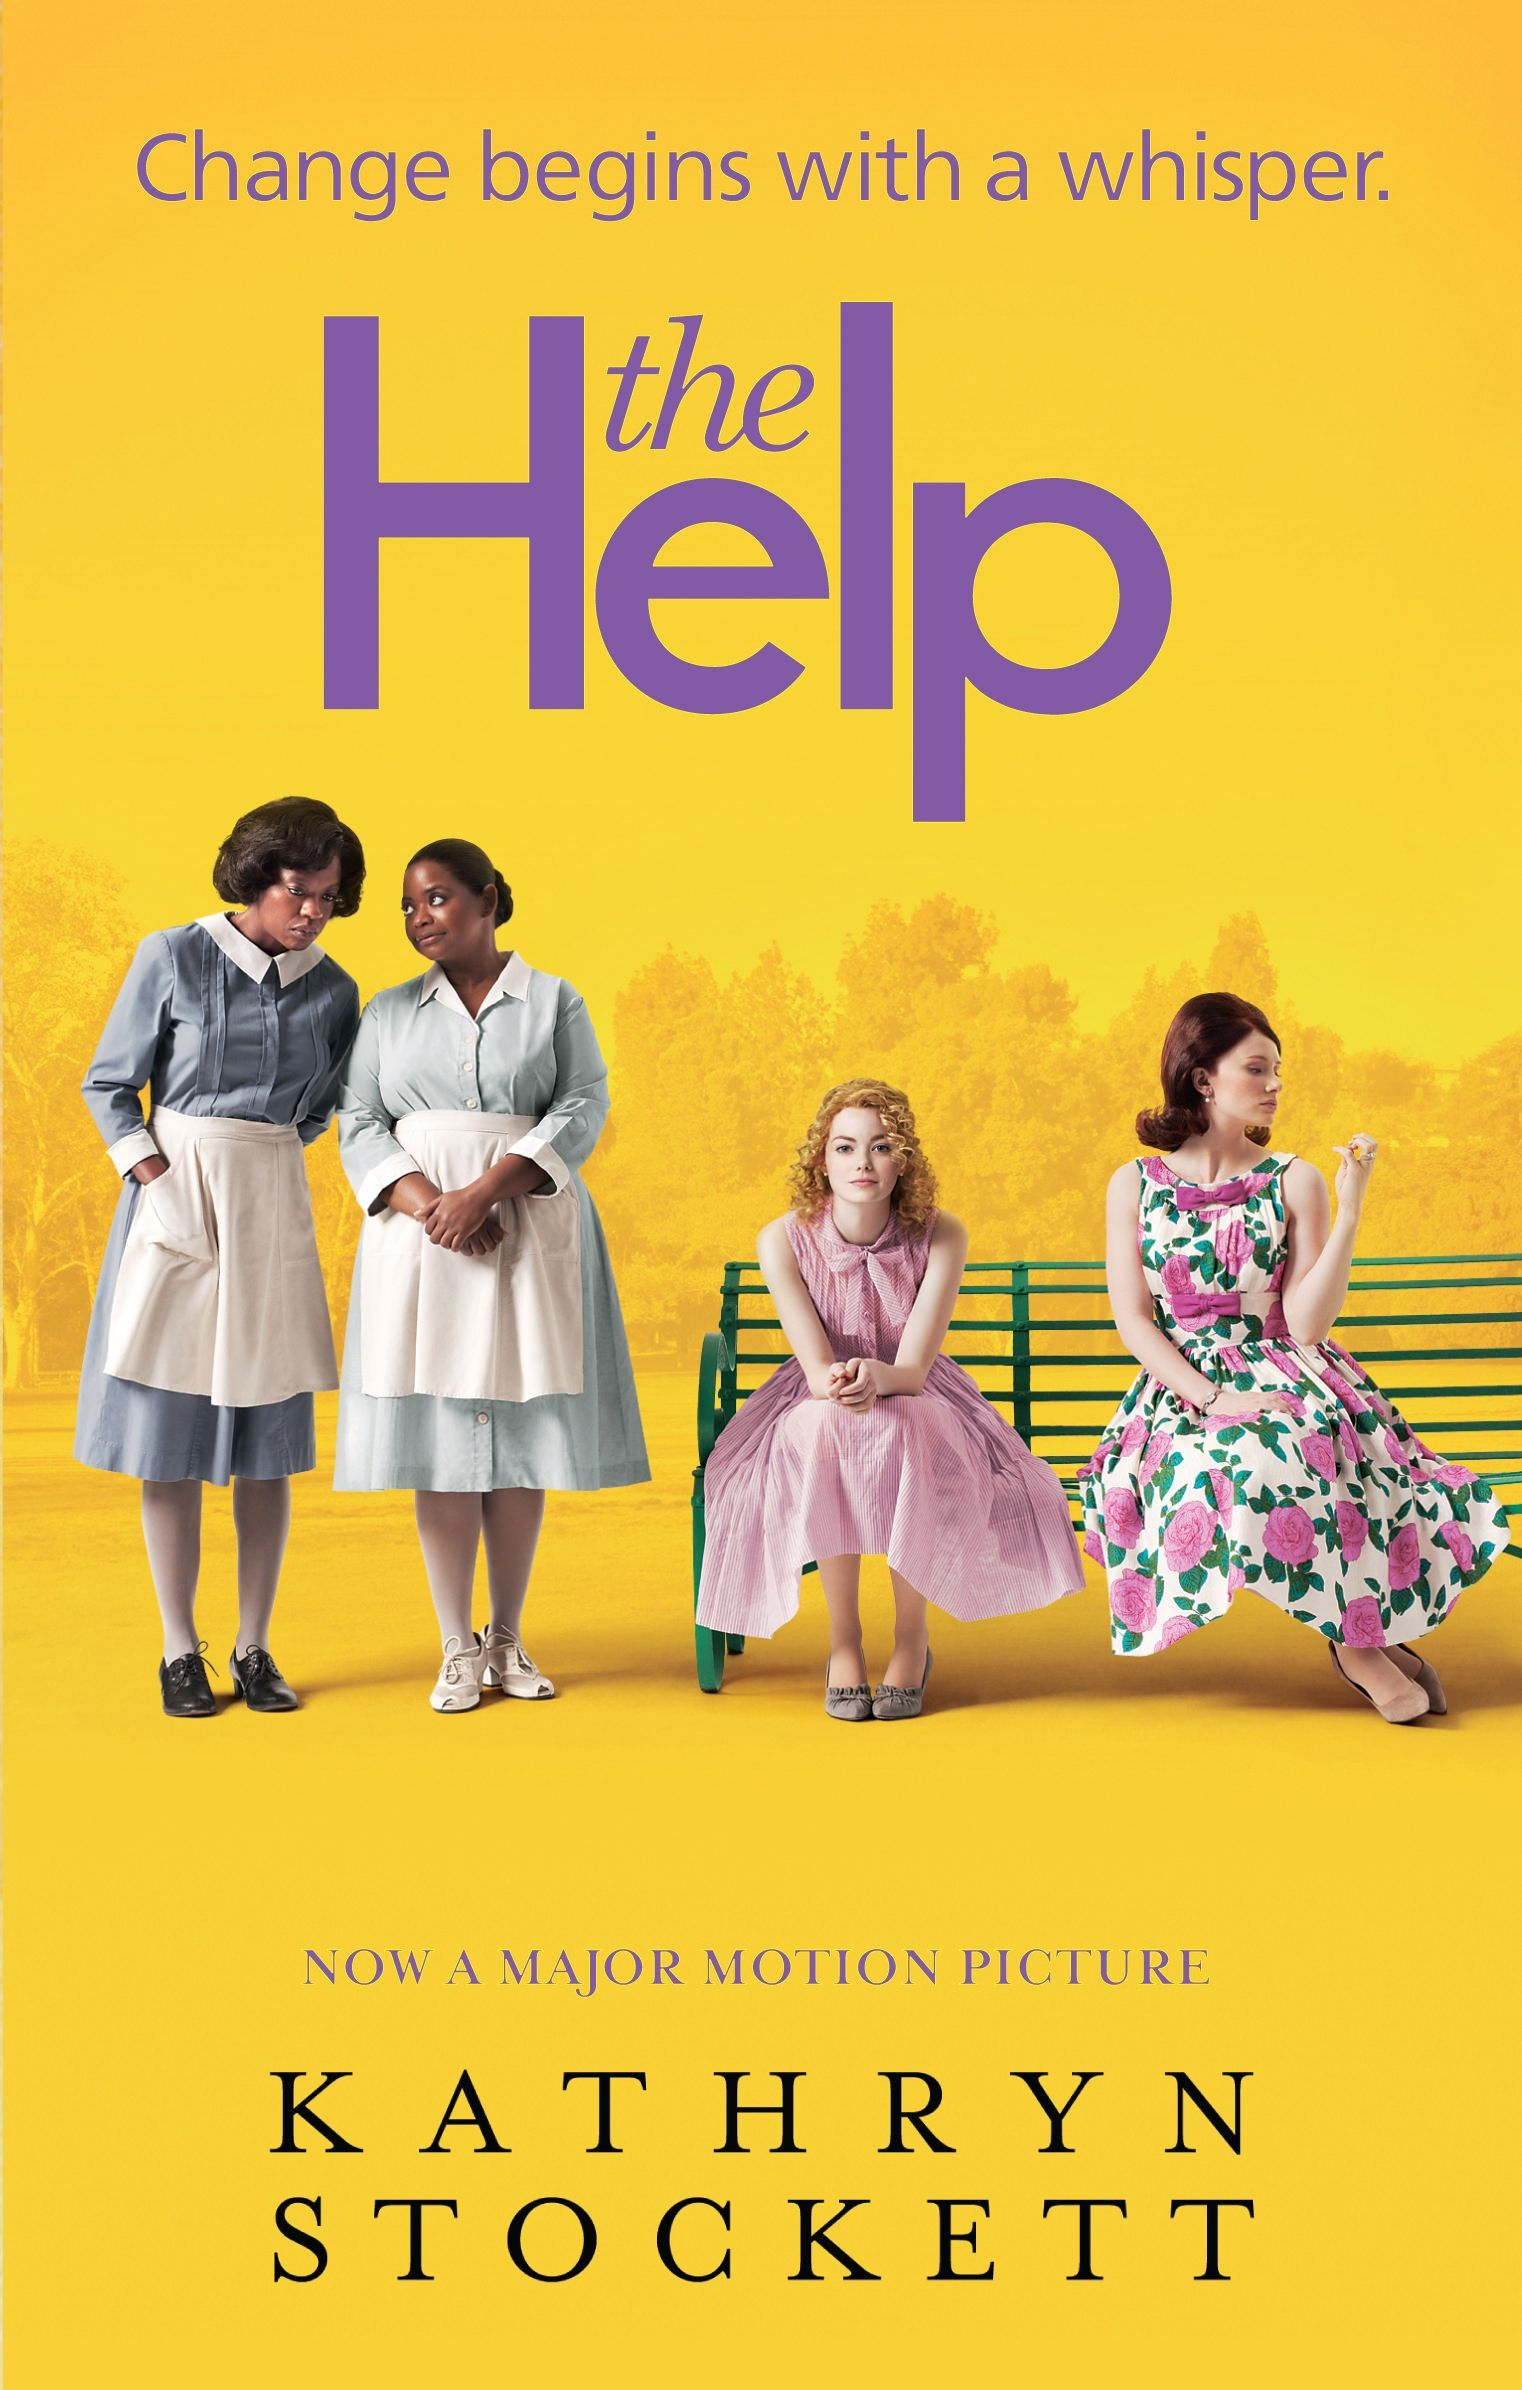 the help book cover - Google Search